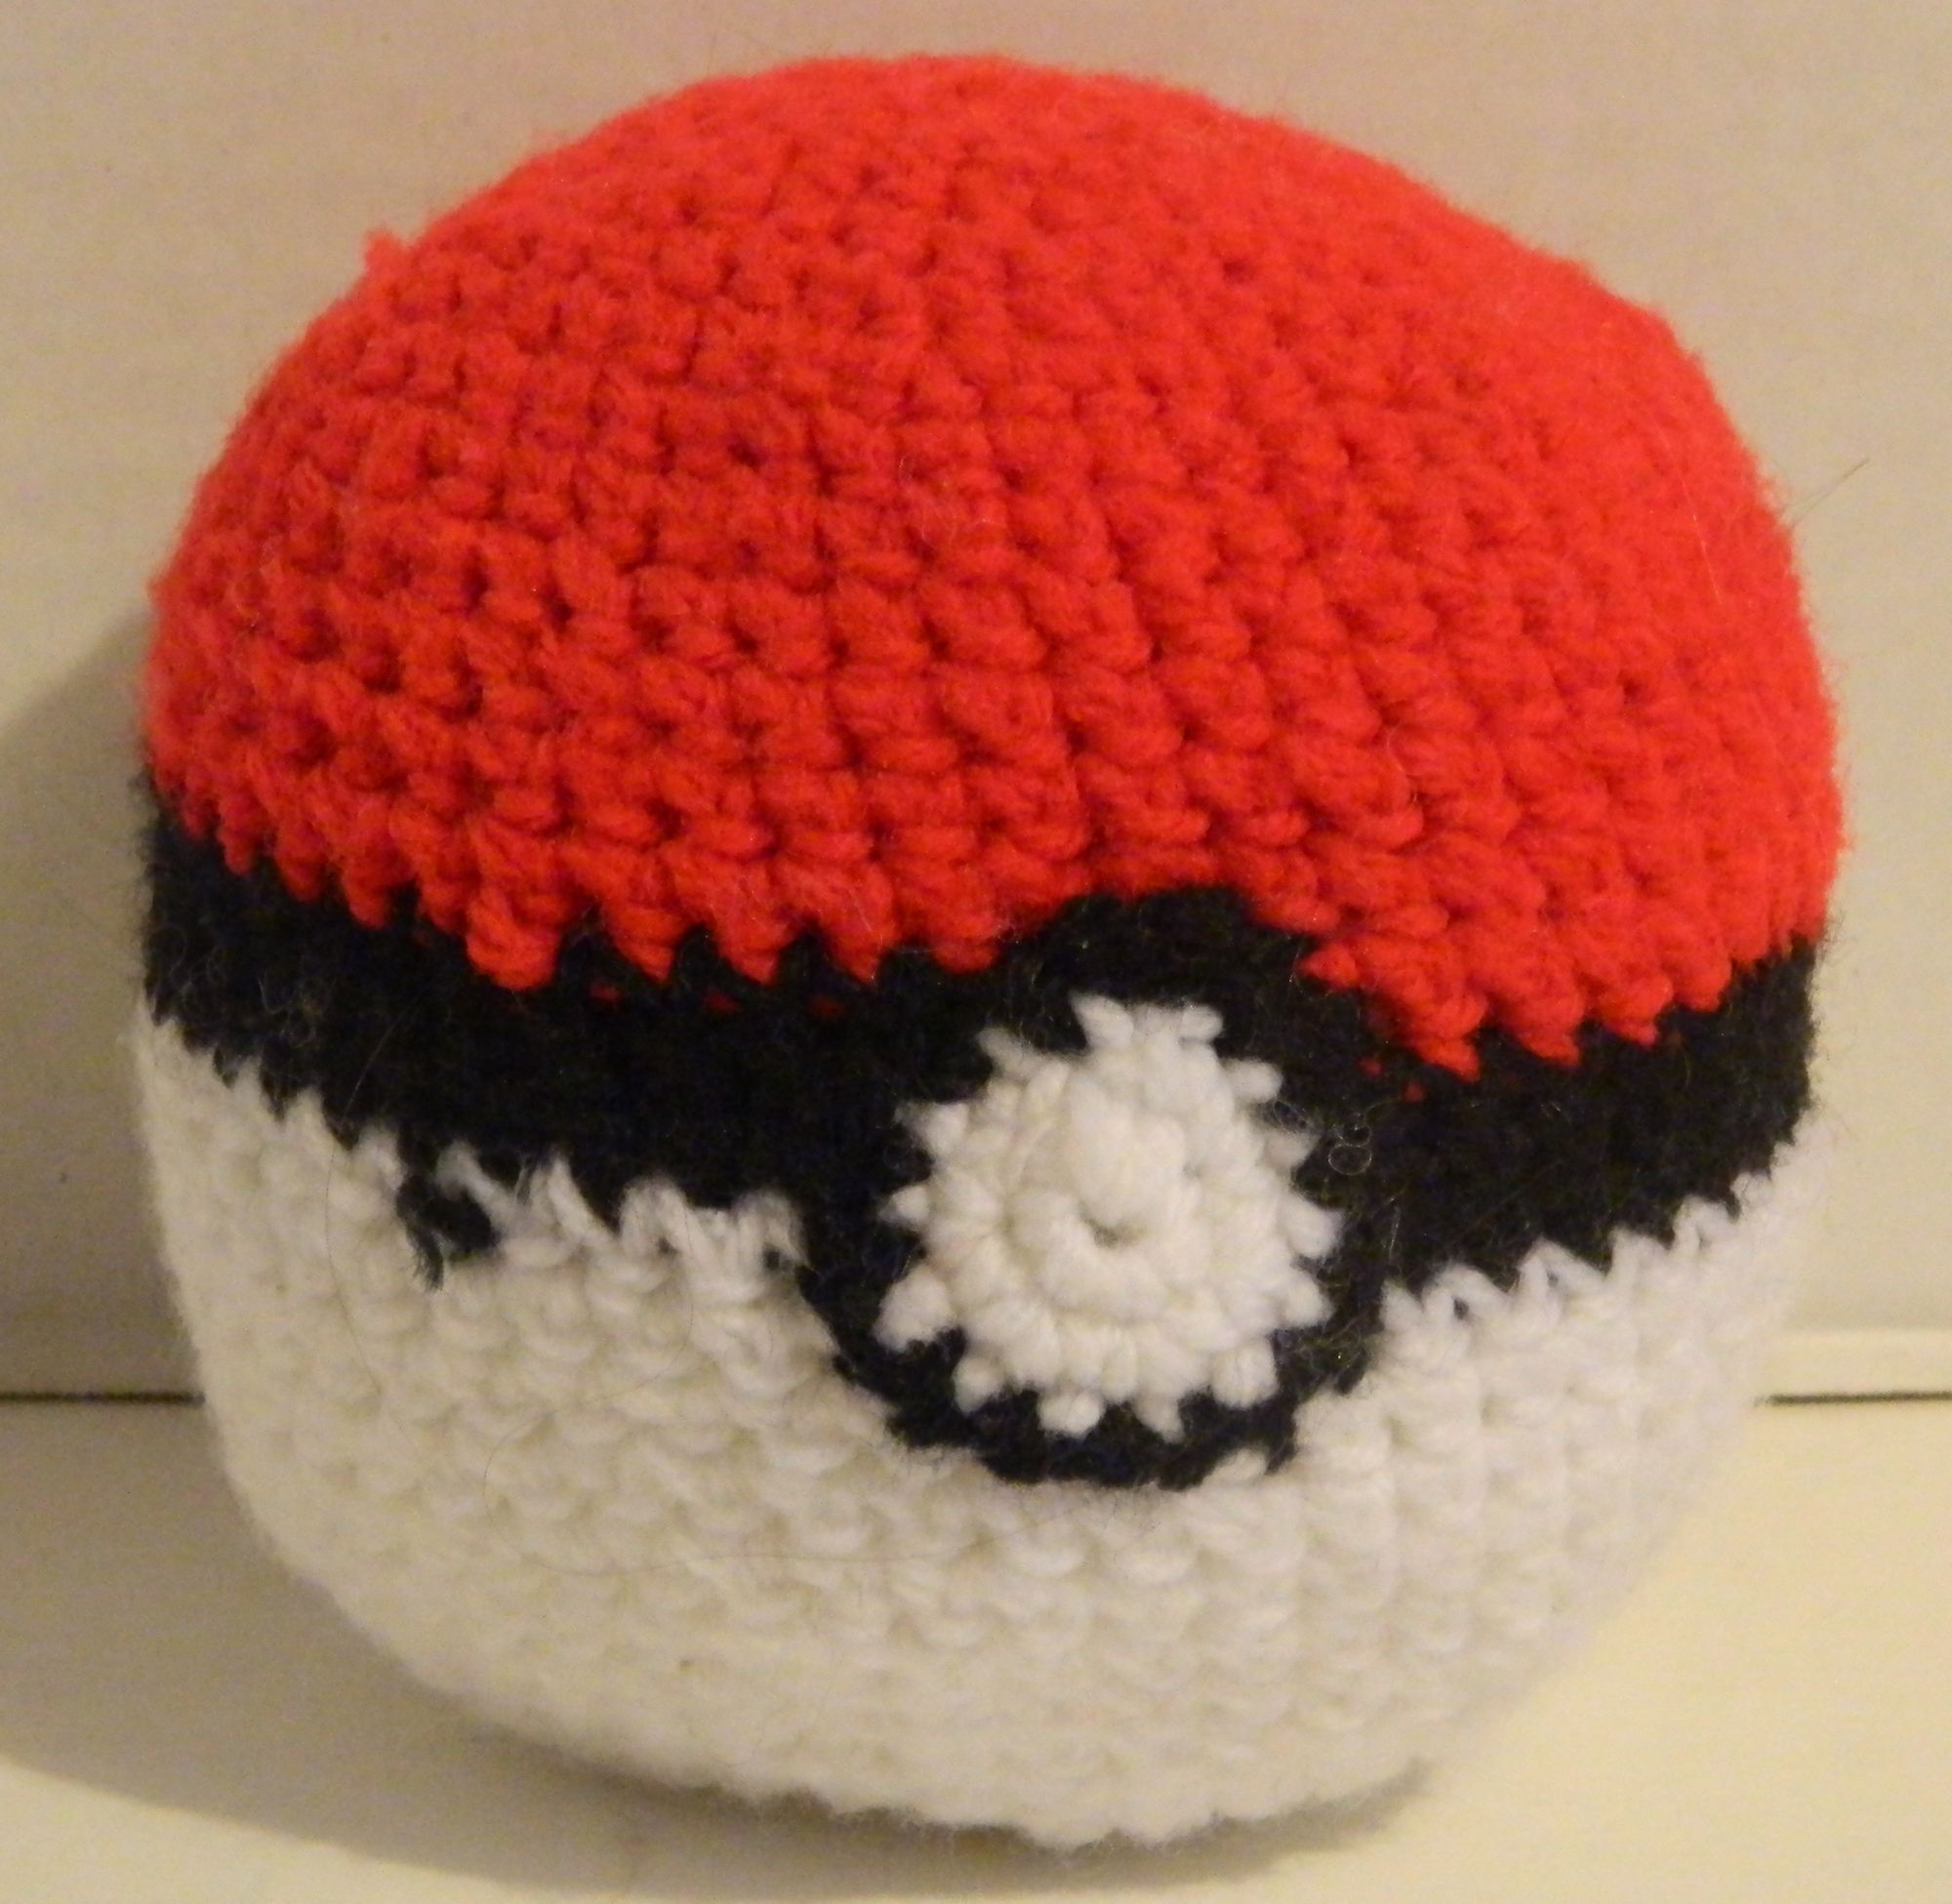 PokeBall Amigurumi Pattern: Geeky Crochet | Geeky Hobbies